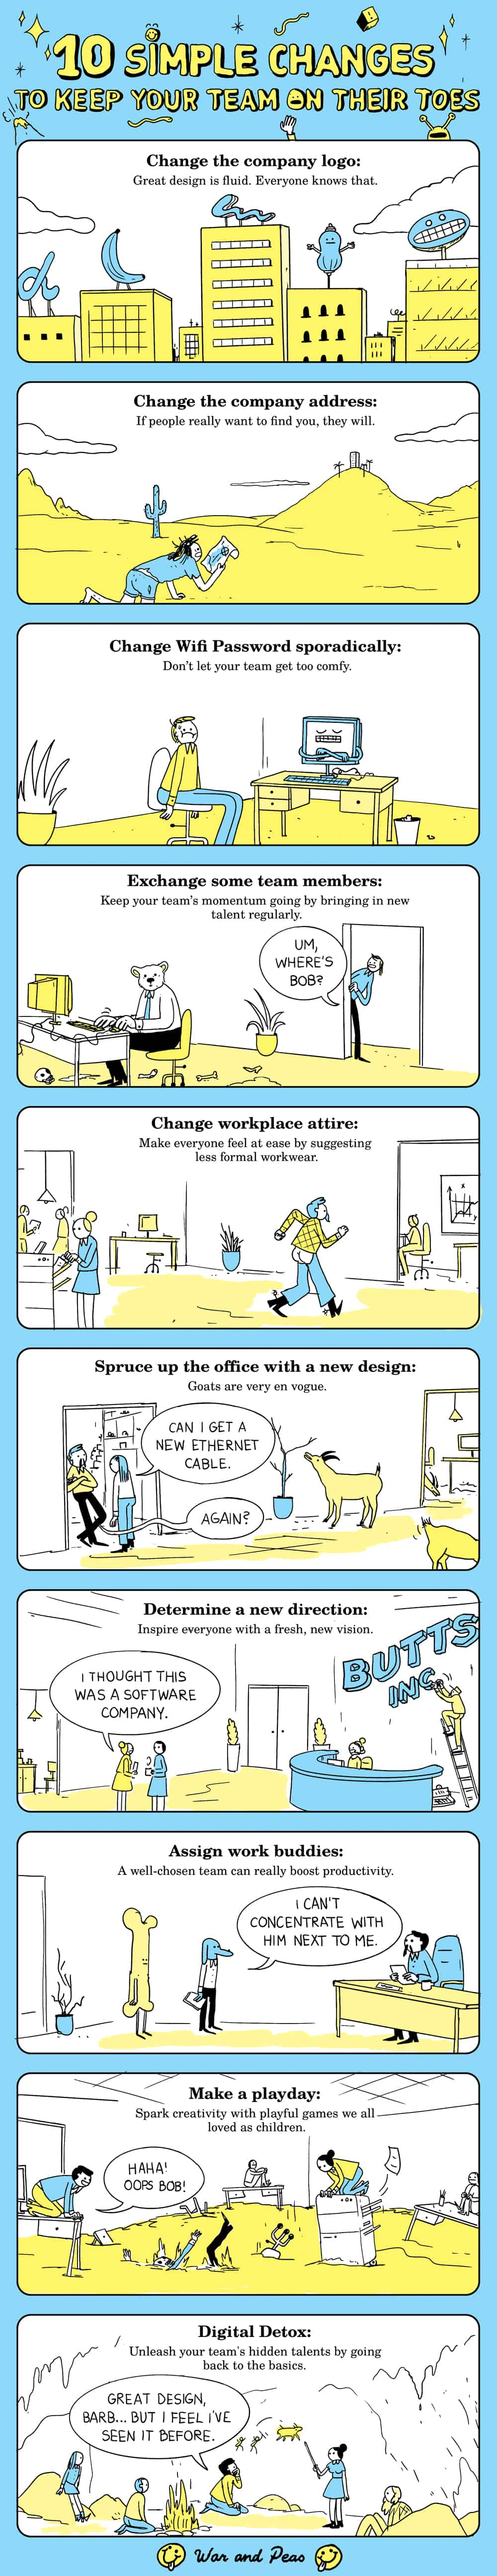 a comic which shows a number of changes being made. the changes shown aren't all good. but they are all very bad